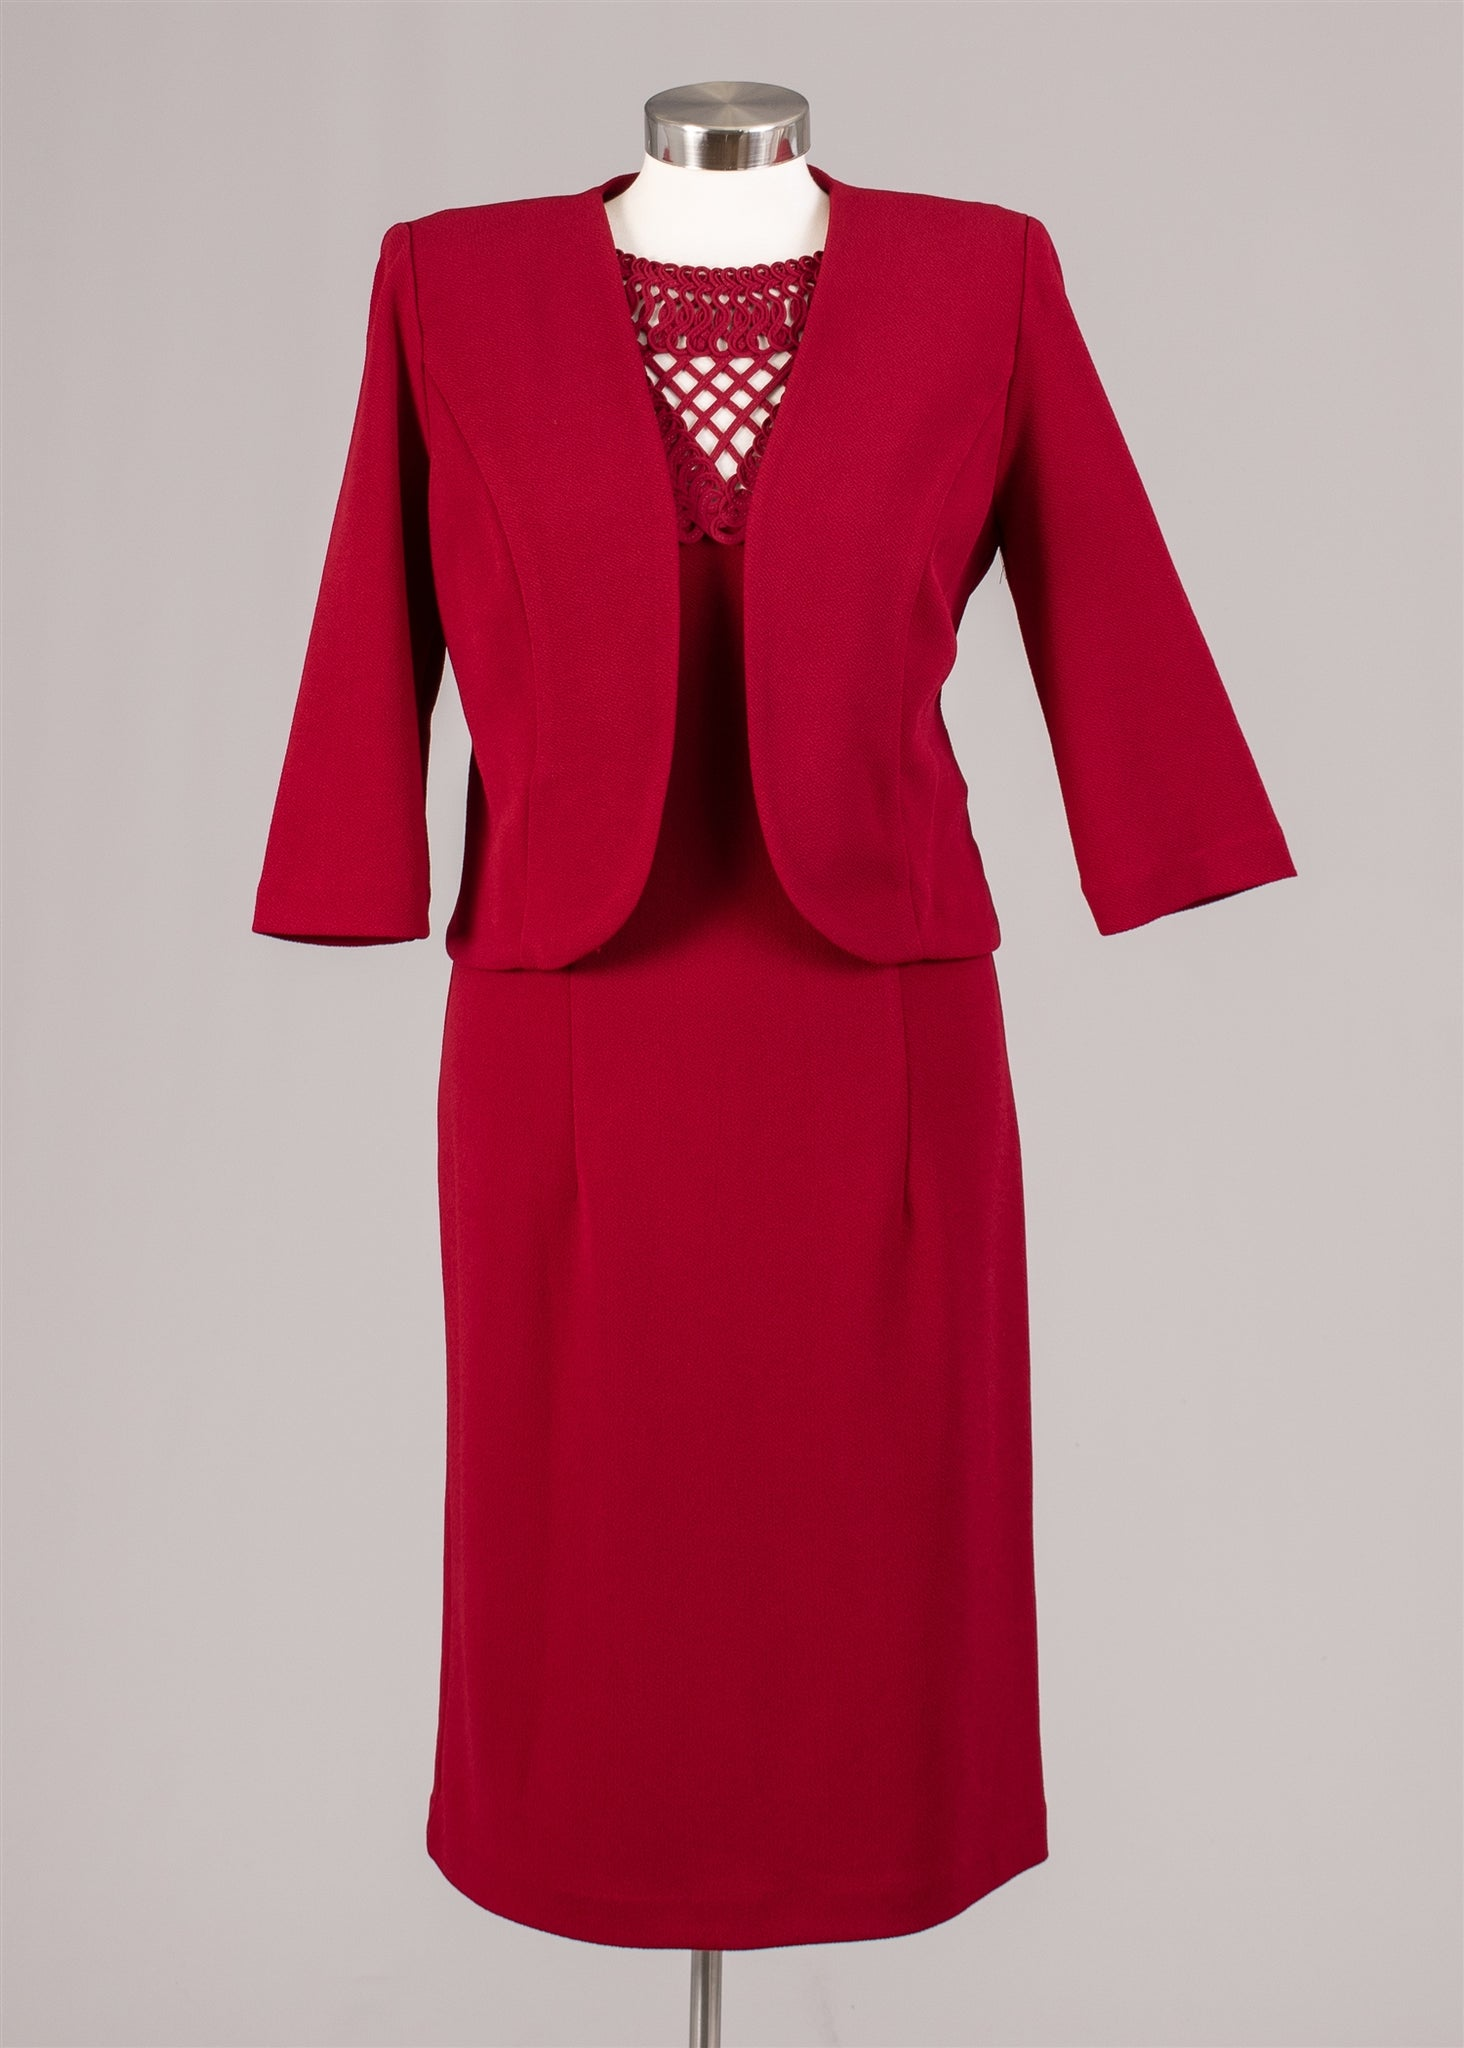 Maya Brook Jacket Dress  28041-Red - Church Suits For Less